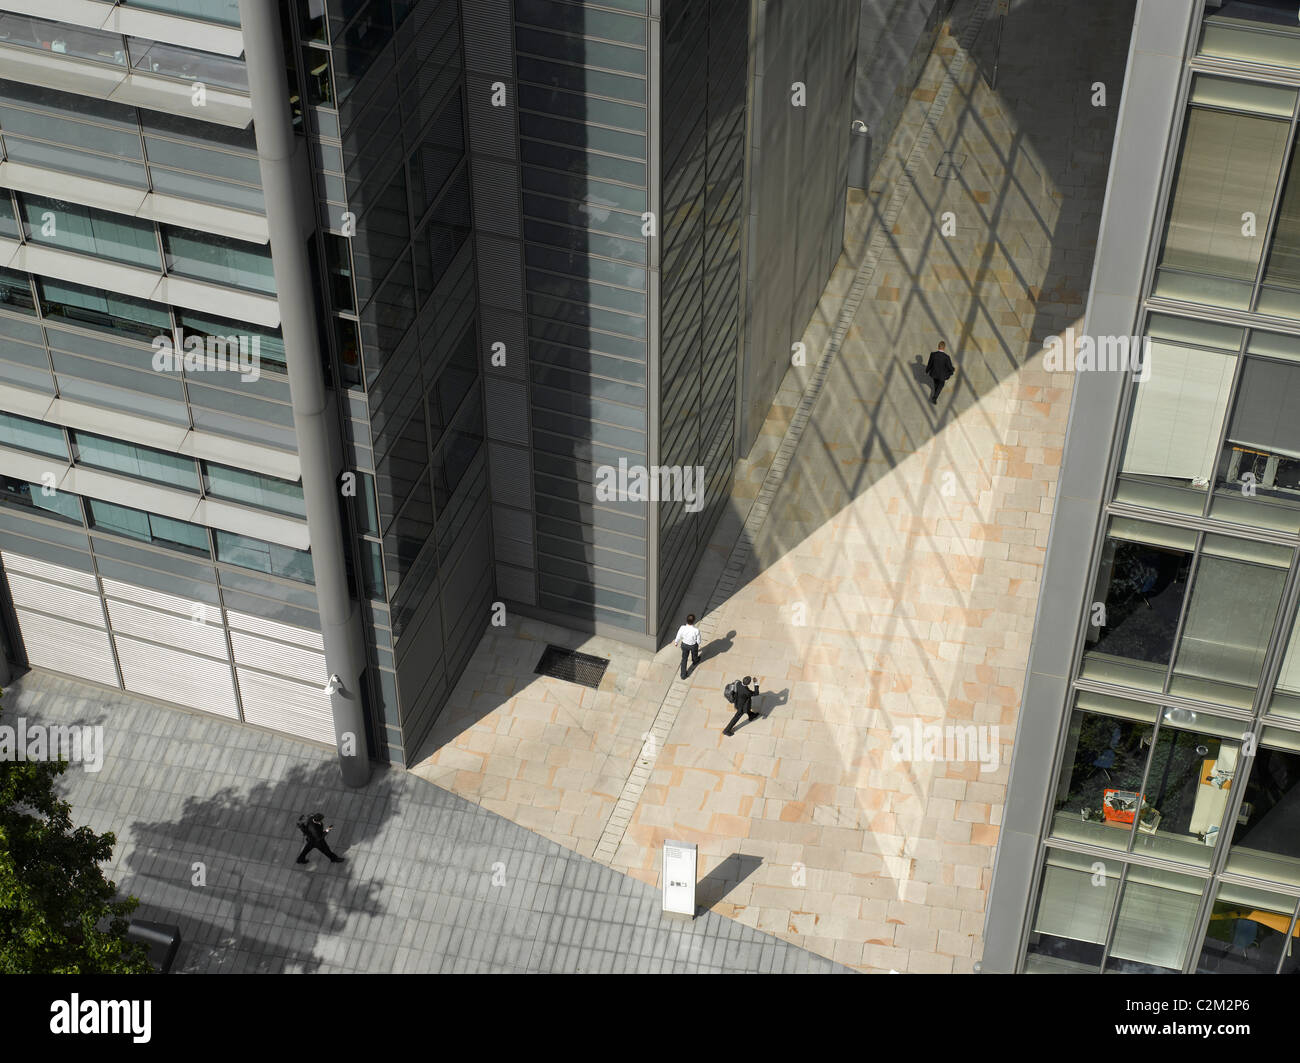 Modern townscape and reflections, City of London Birdseye view. - Stock Image